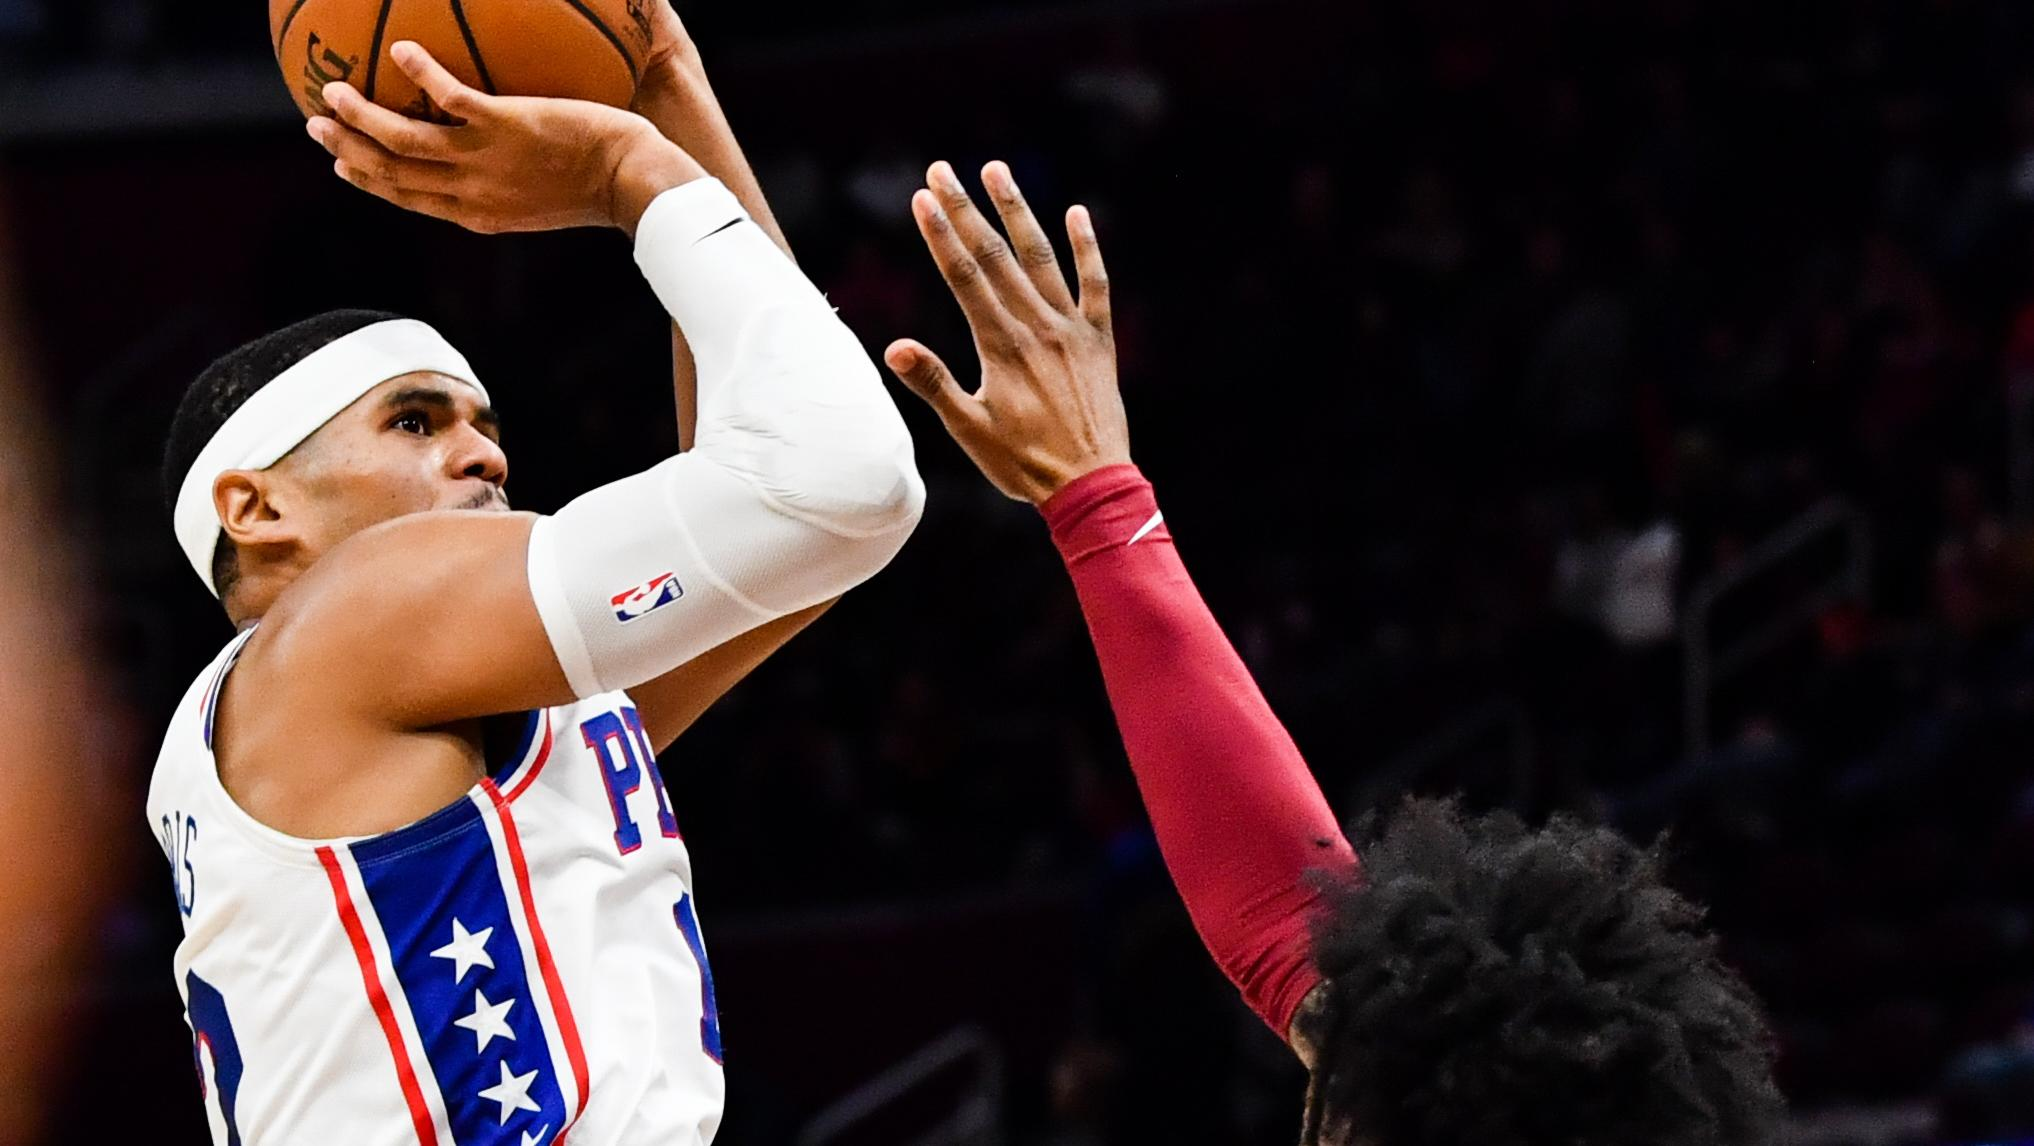 Sixers' imperfect fit has led to growing pains offensively